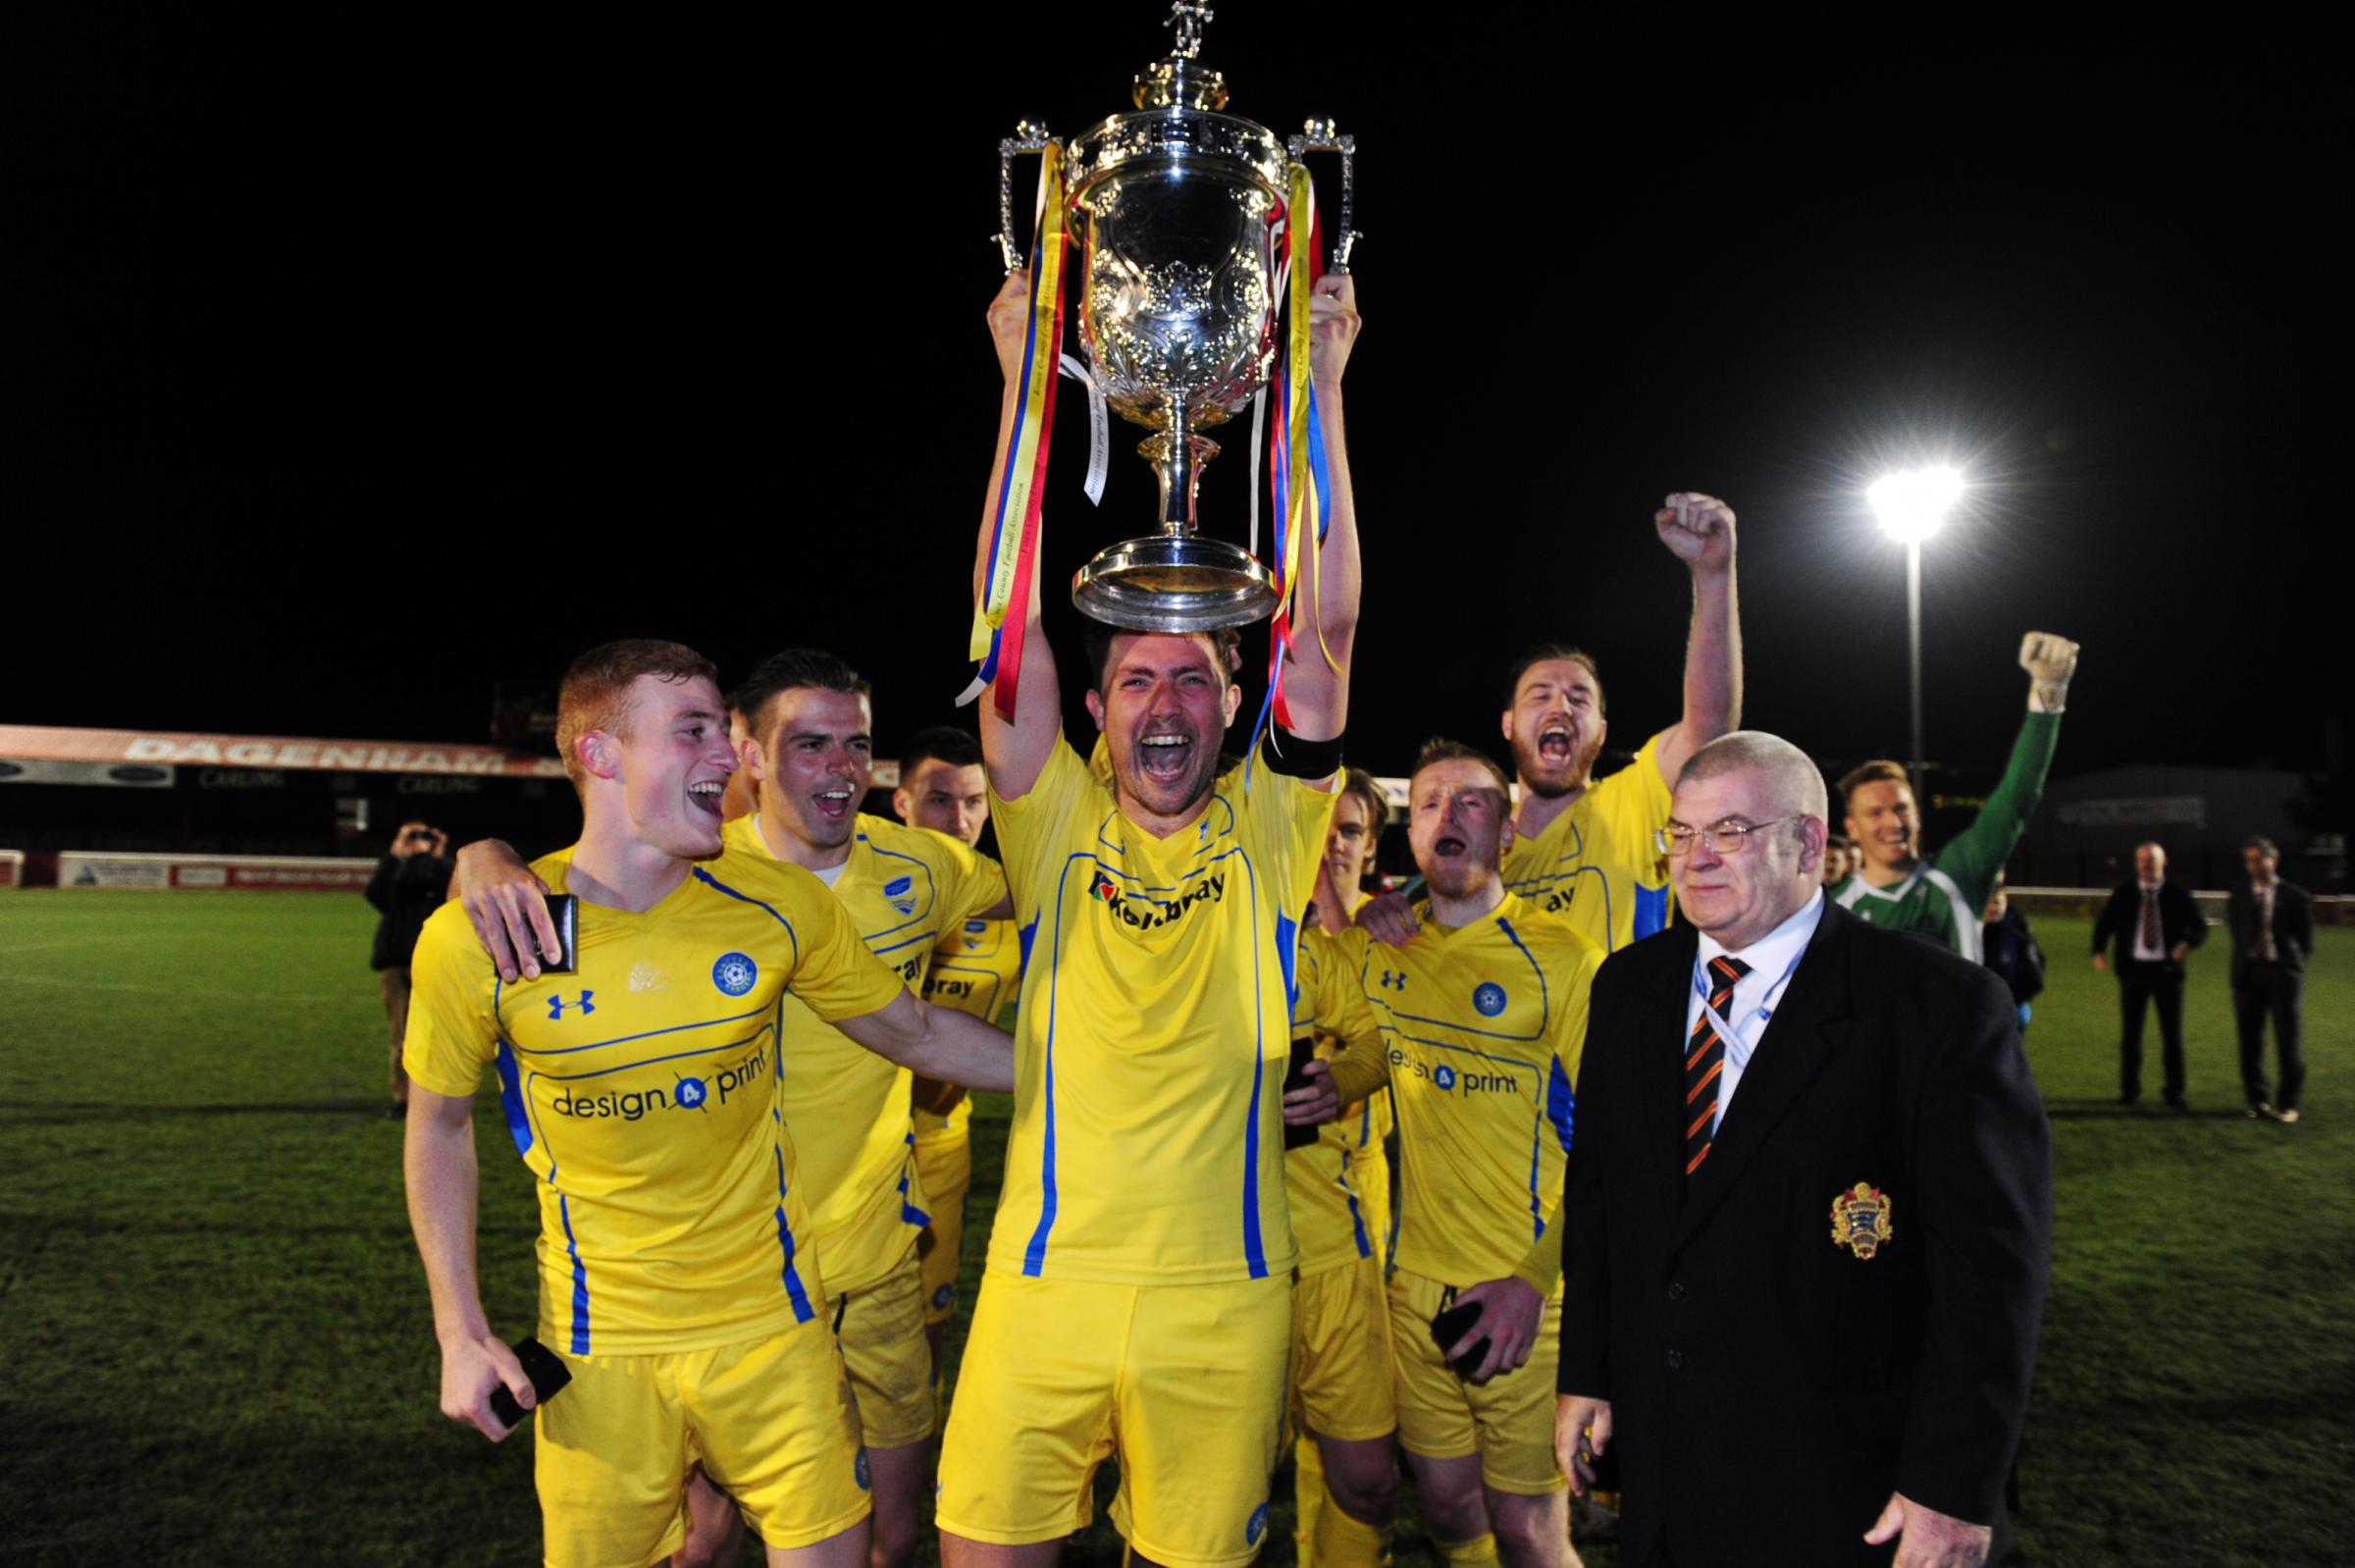 Winners - Concord win the trophy in 2016. James White, pictured, lifting the trophy, now plays for East Thurrock